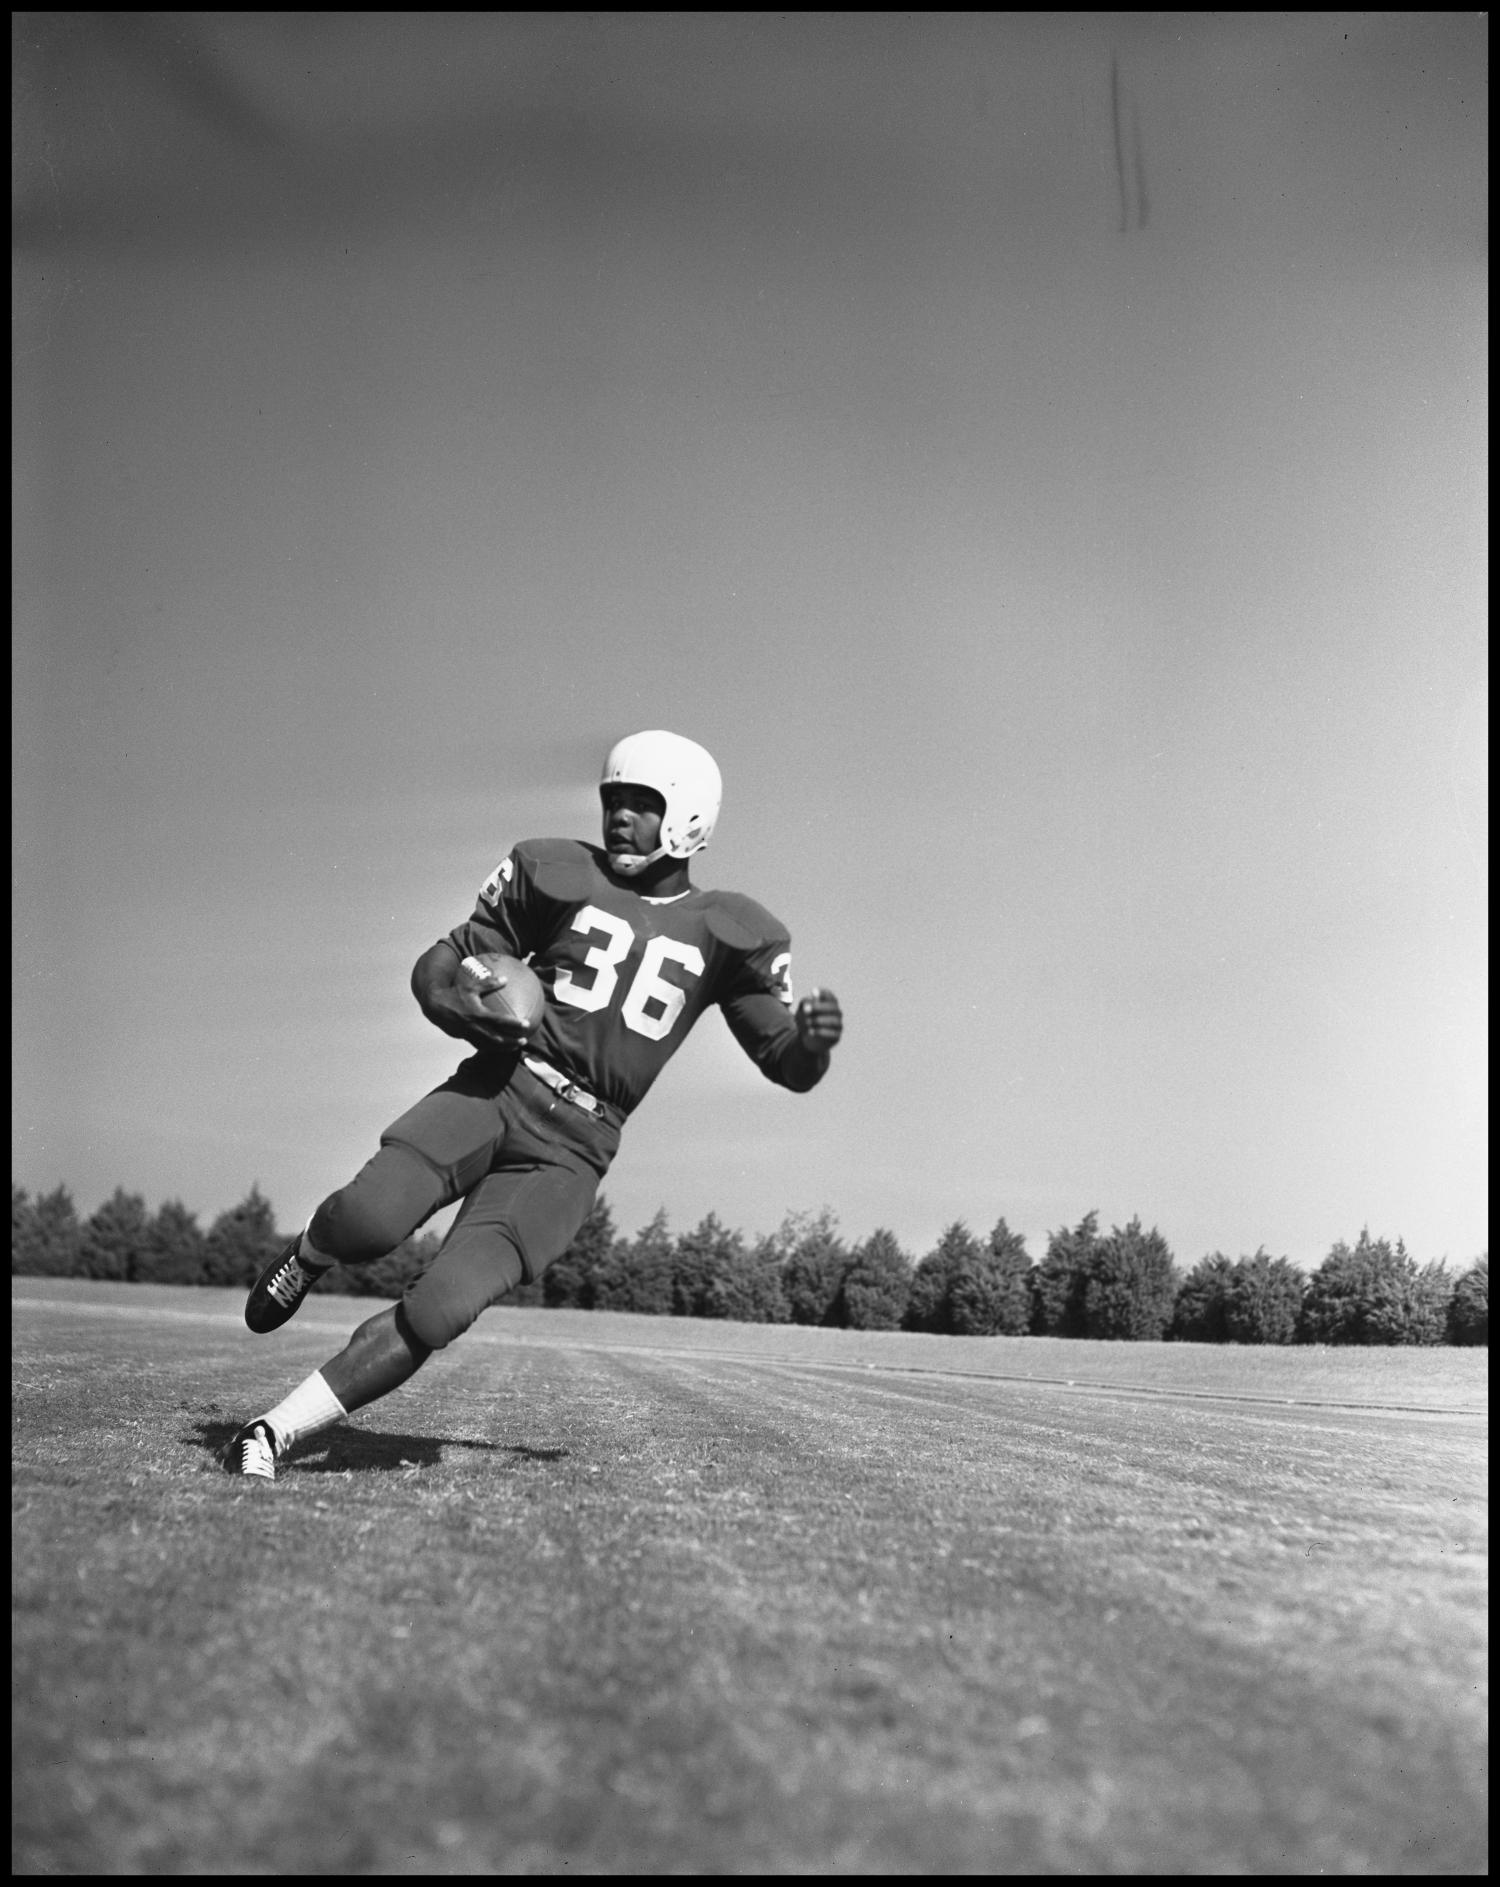 Football Player Number 36 Running On A Football Field